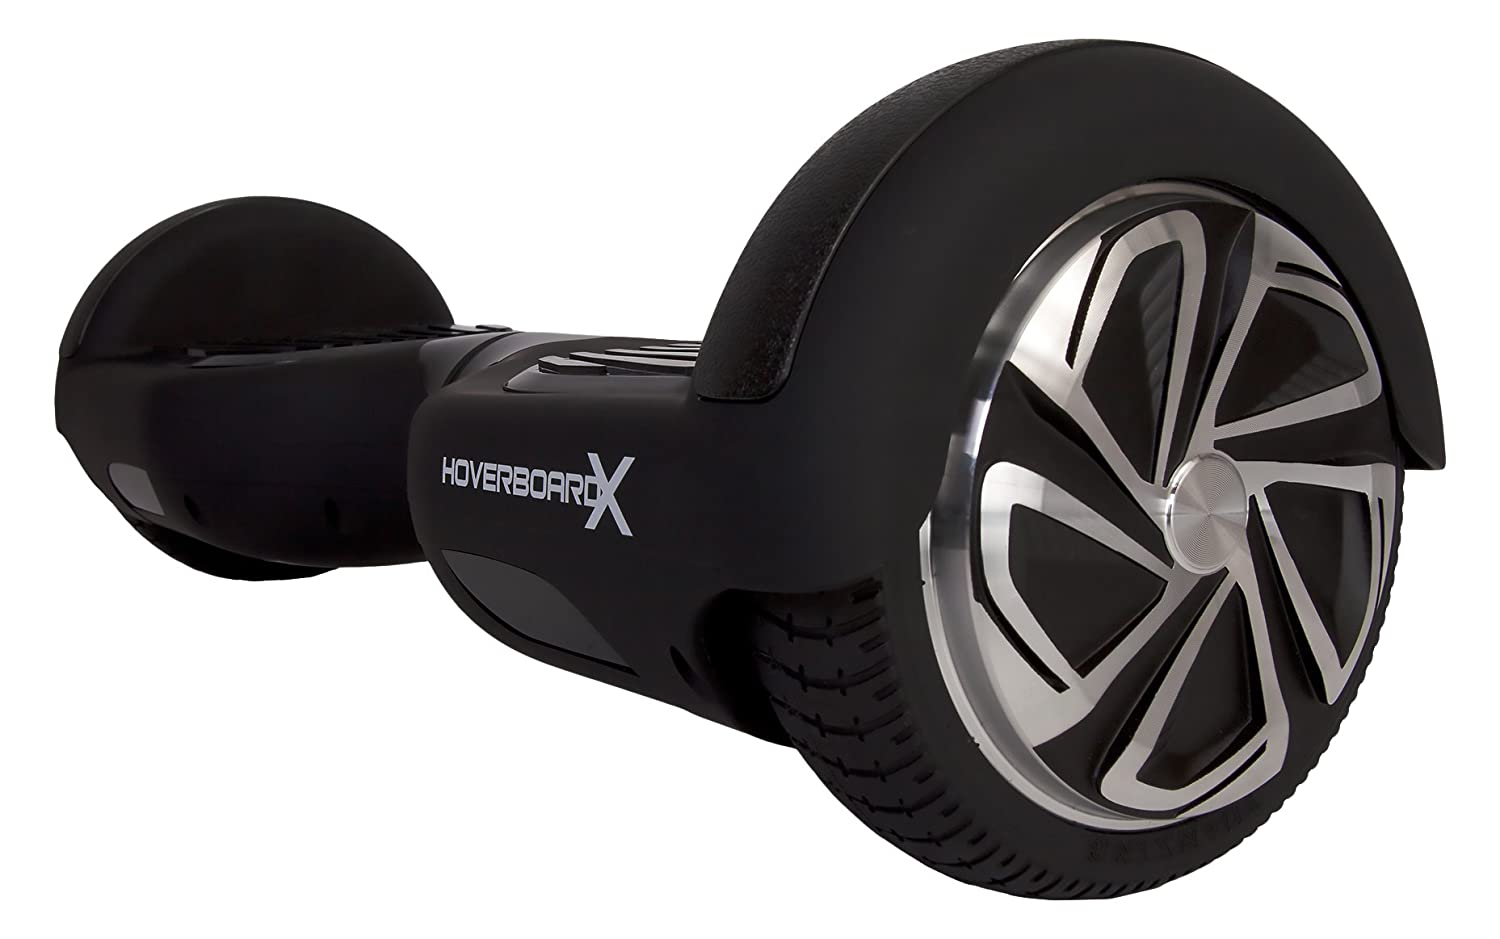 Top 10 Best Hoverboard Reviews in 2020 2